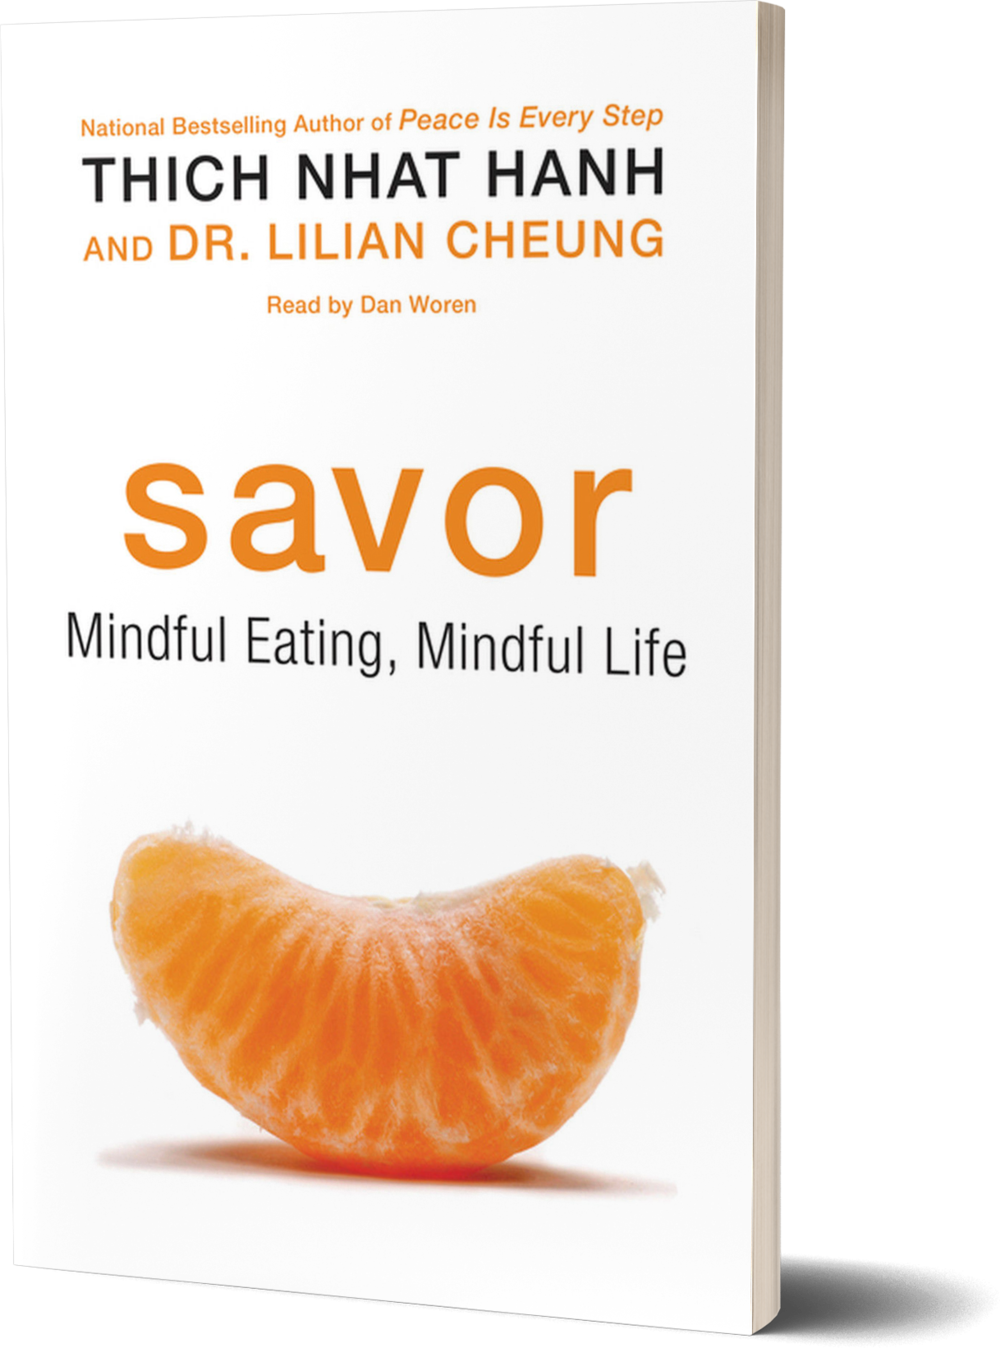 Savor- Mindful Eating, Mindful Life by Thich Nhat Hanh and Dr. Lilian Cheung.png